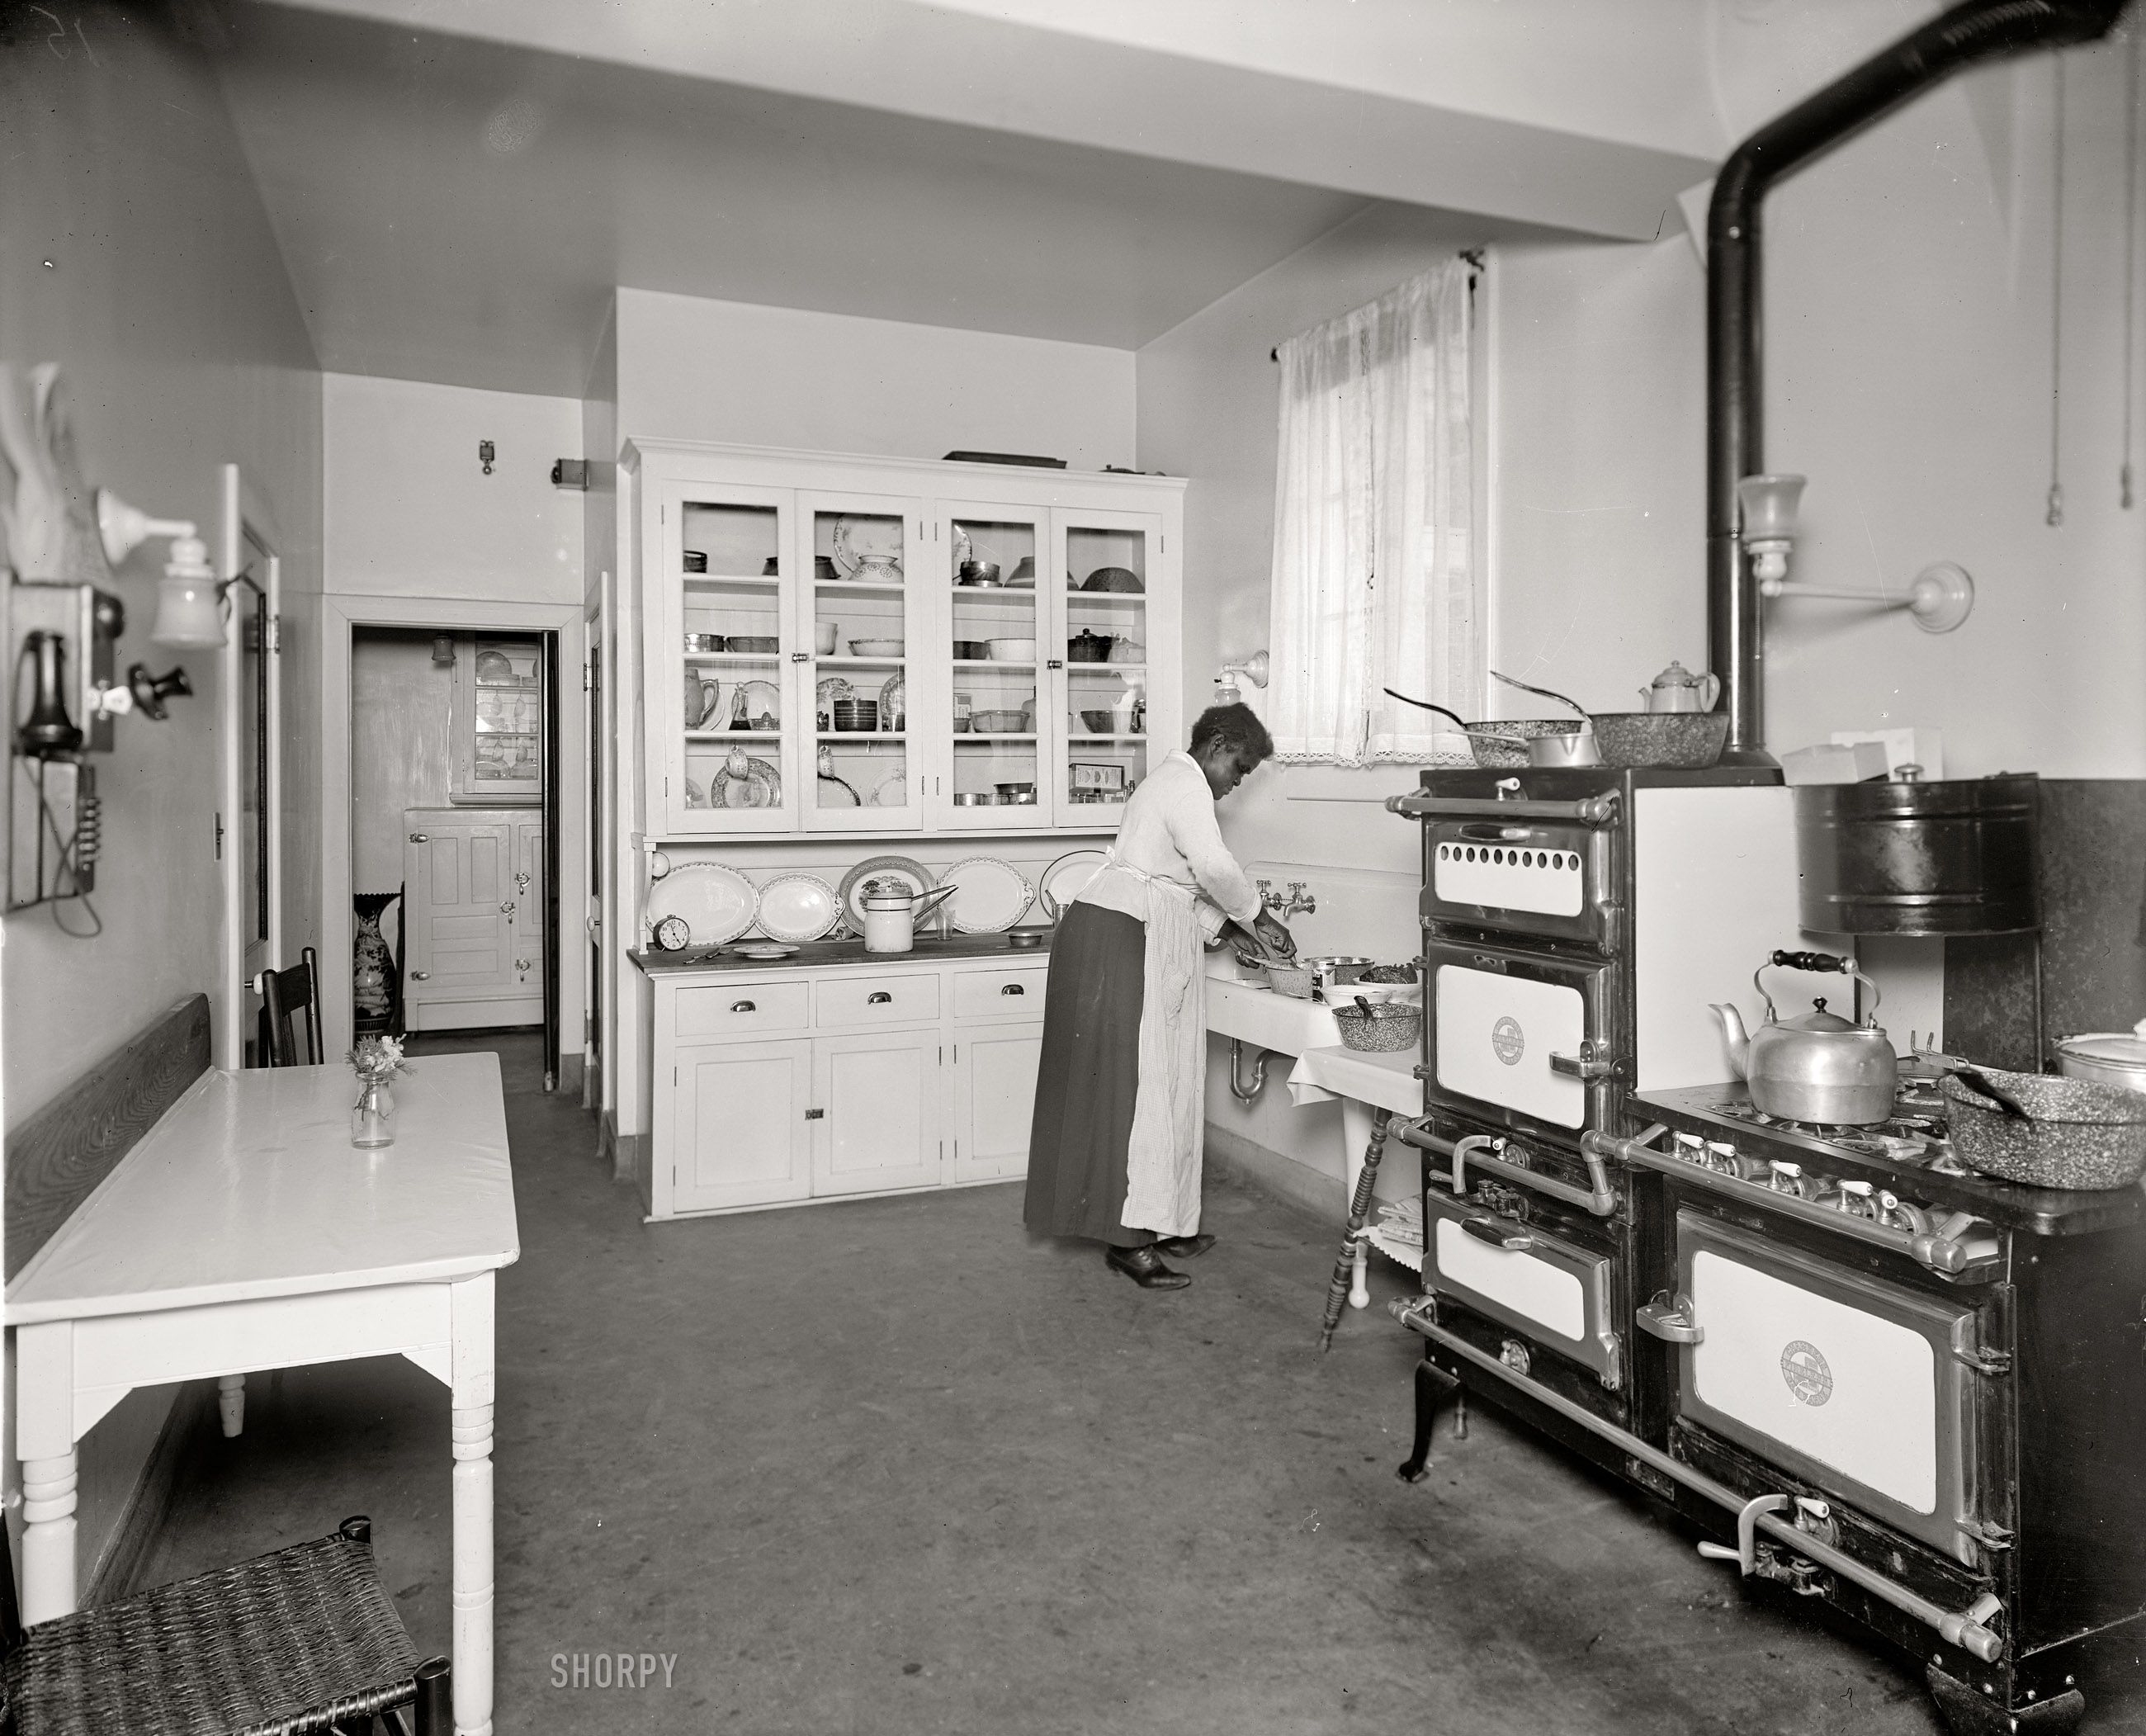 Shorpy Historical Photo Archive The Modern Kitchen 1920 Vintage Kitchen 1920s Kitchen Home